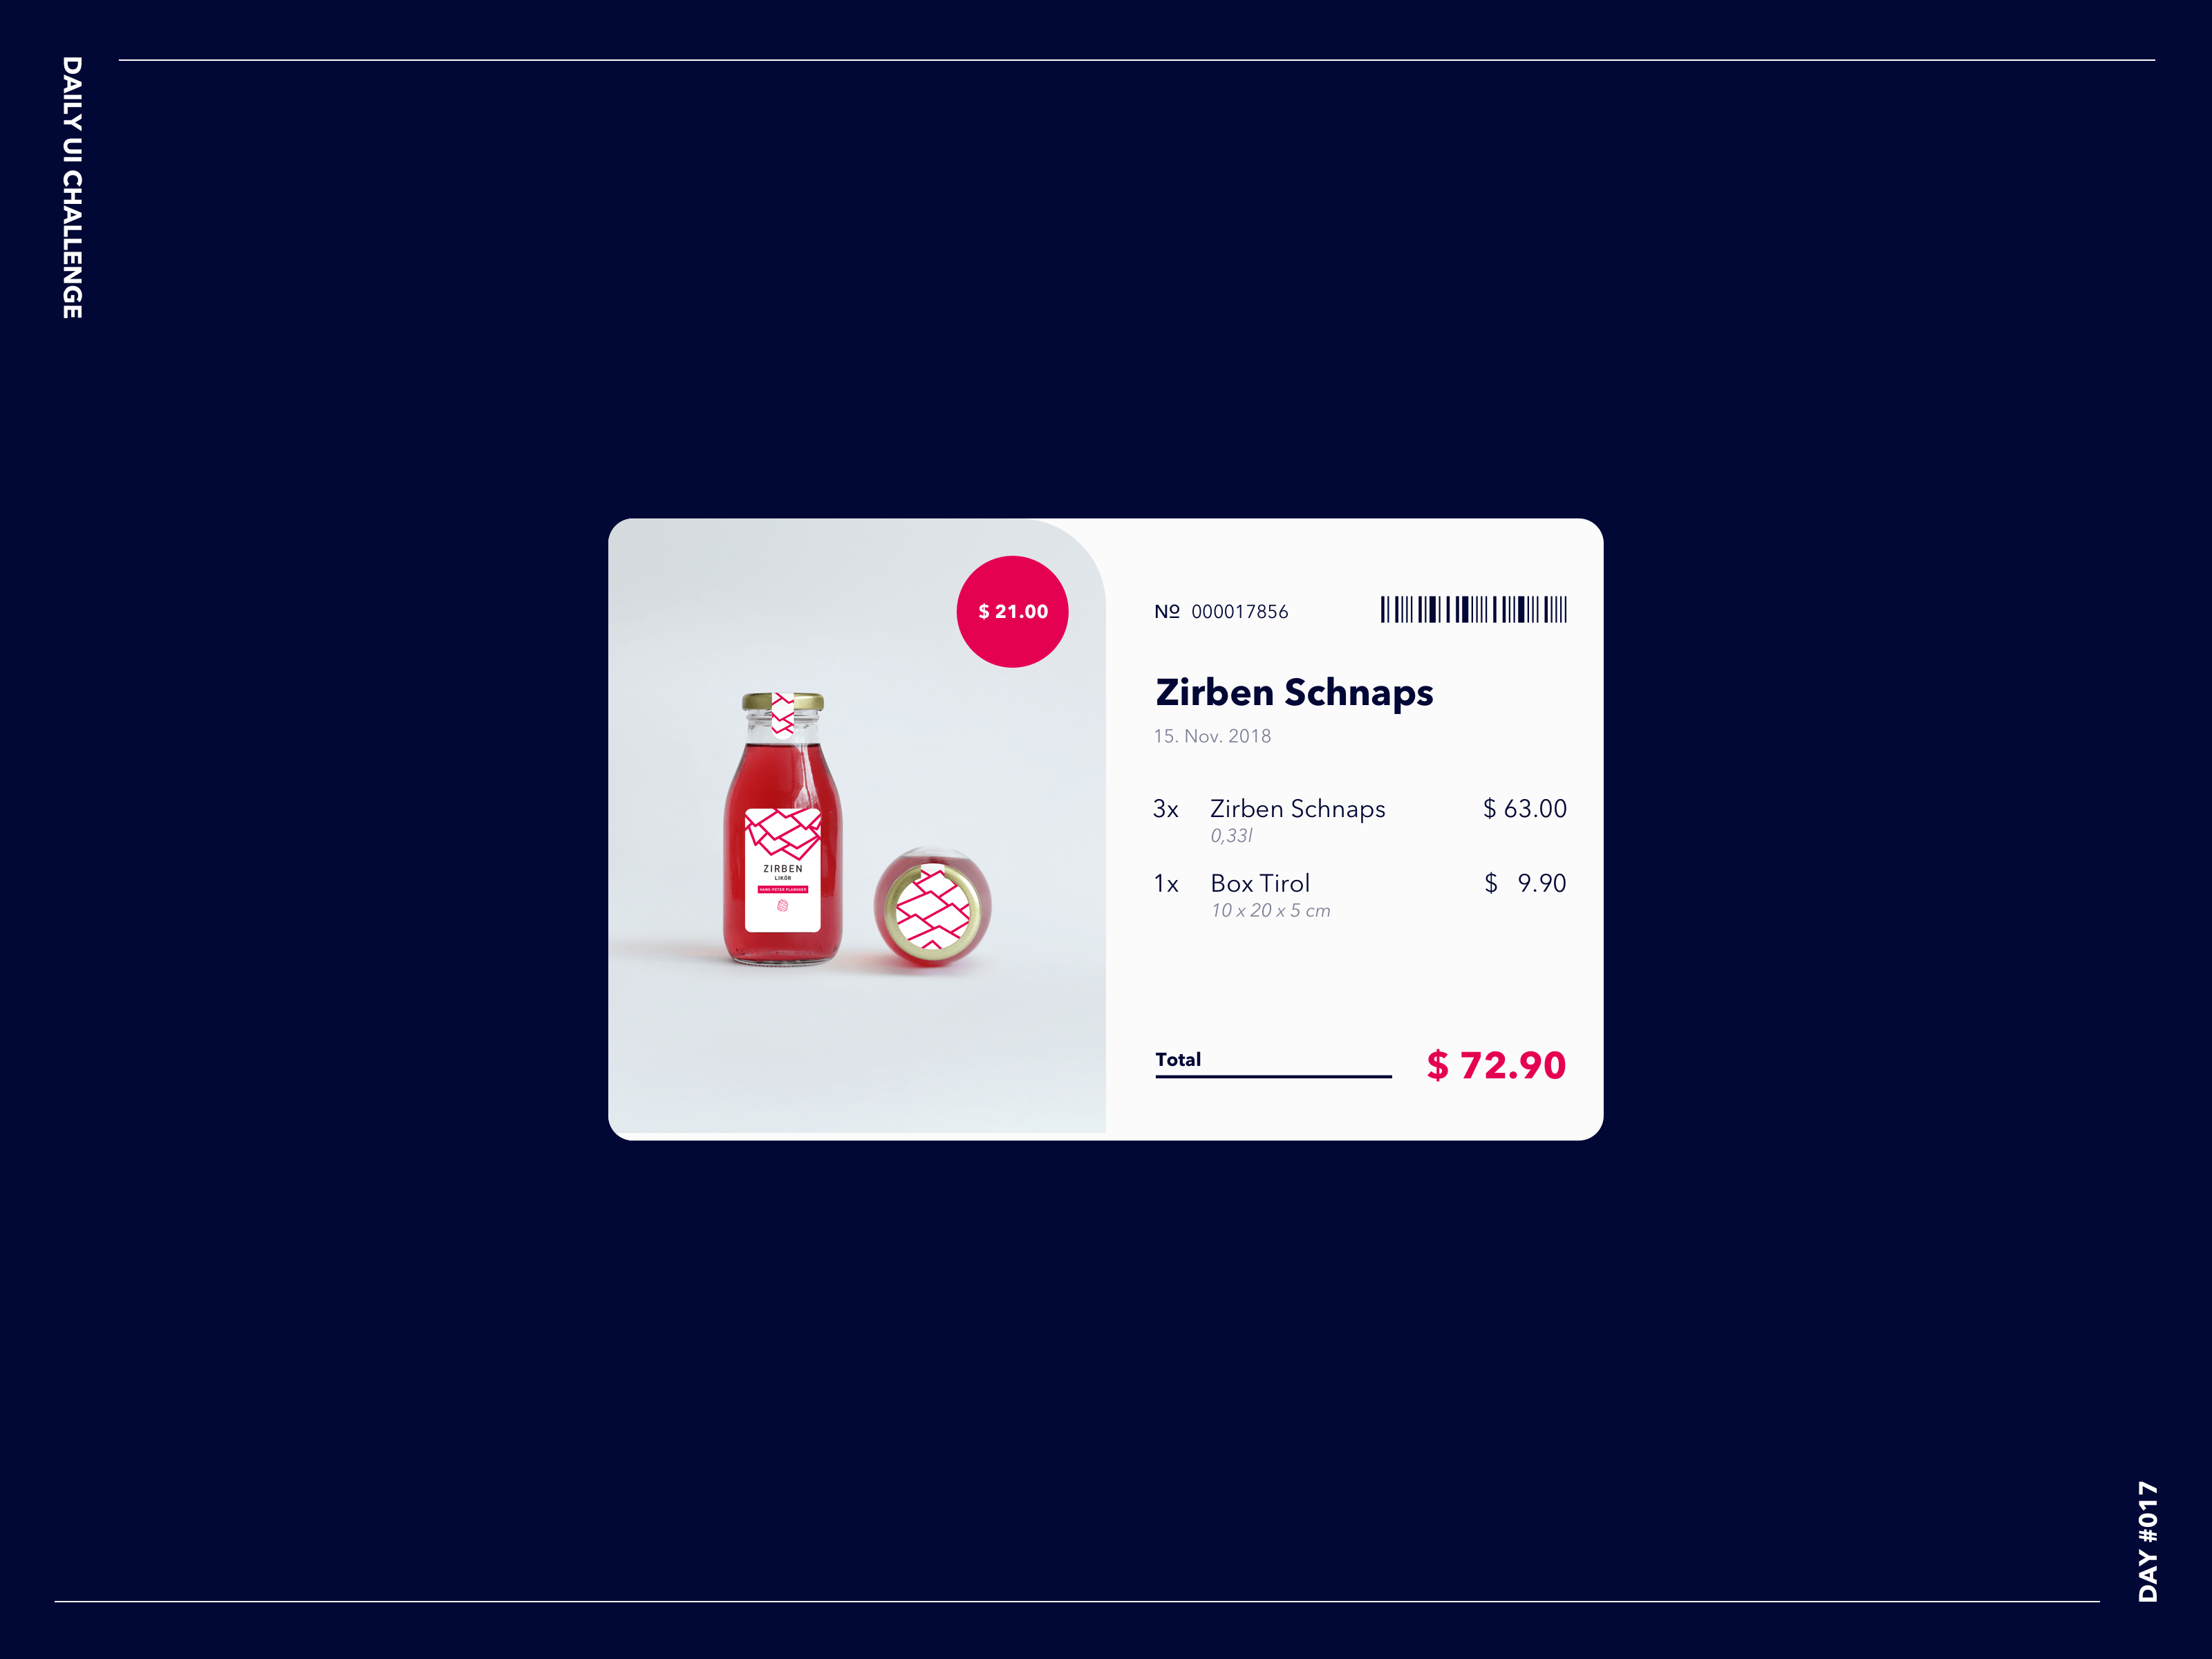 017-DUIC-Email-Receipt-Dribbble